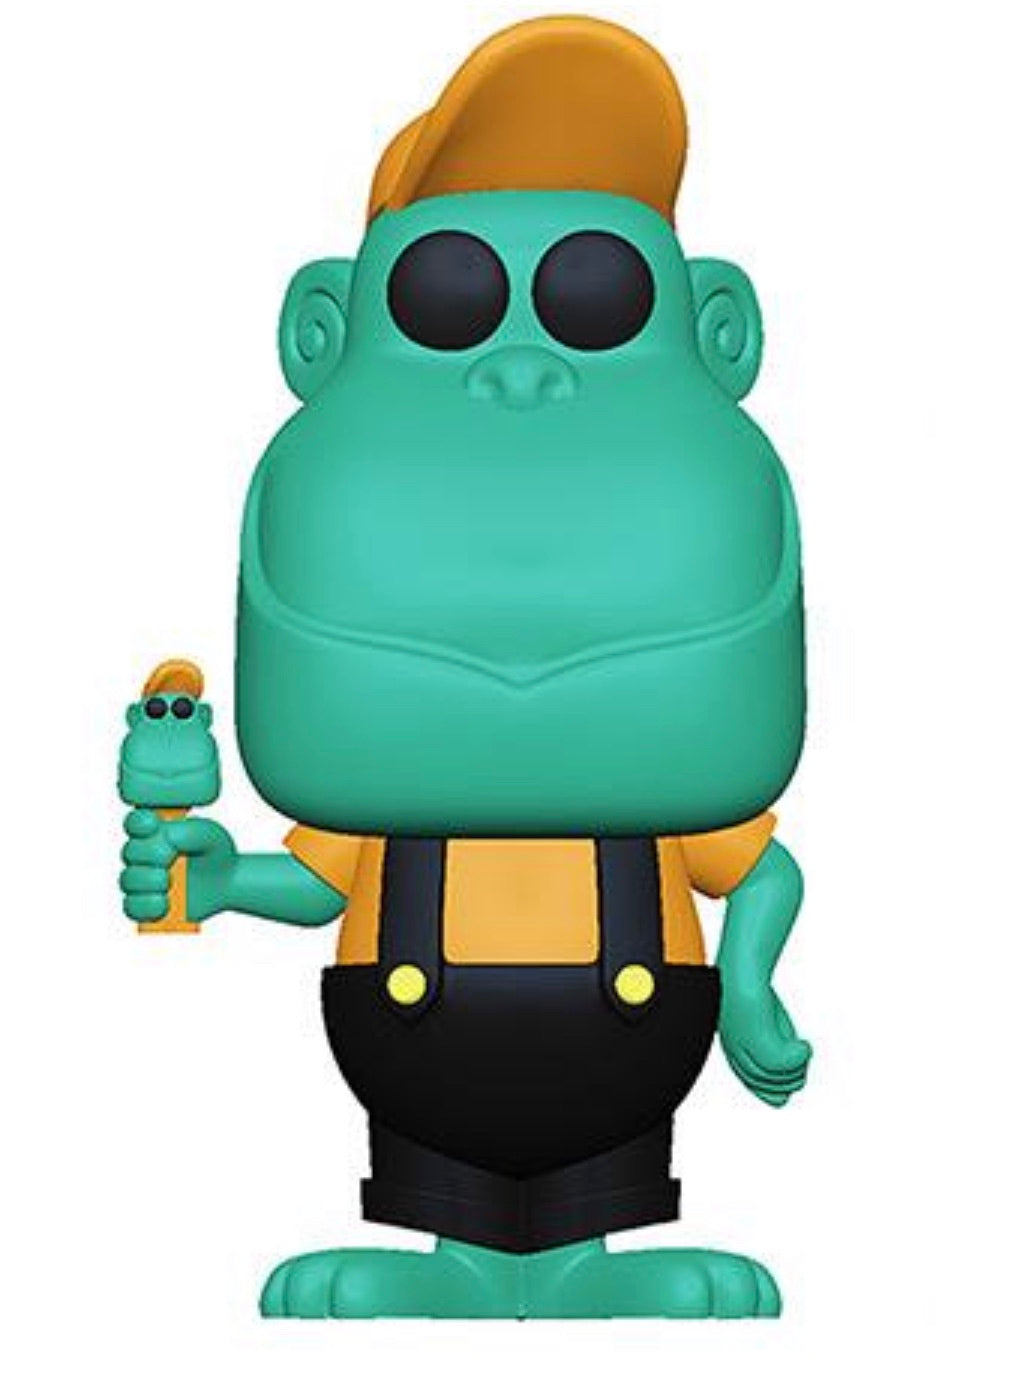 PEZ FUNKO POP! MIMIC THE MONKEY (TEAL) (PRE-ORDER)